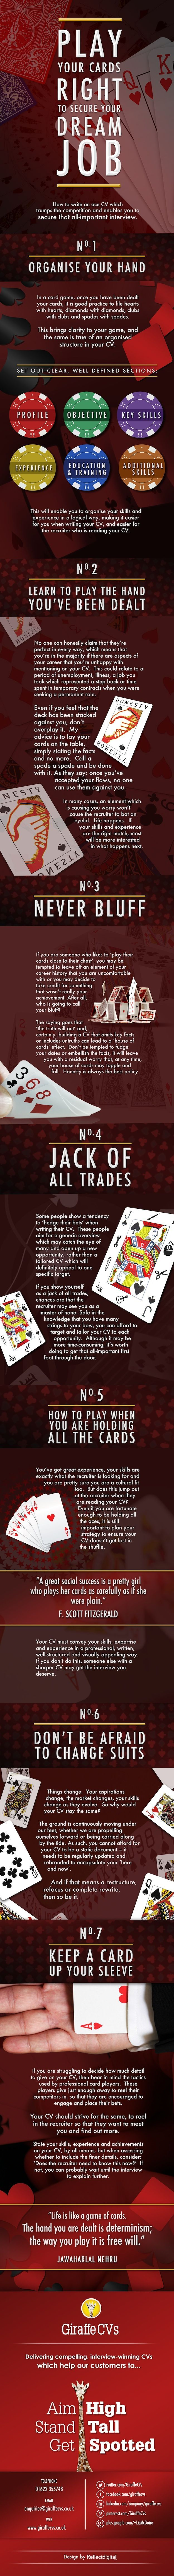 How to Play Your Cards Right infographic. A neat infographic with helpful tips to securing that dream job.